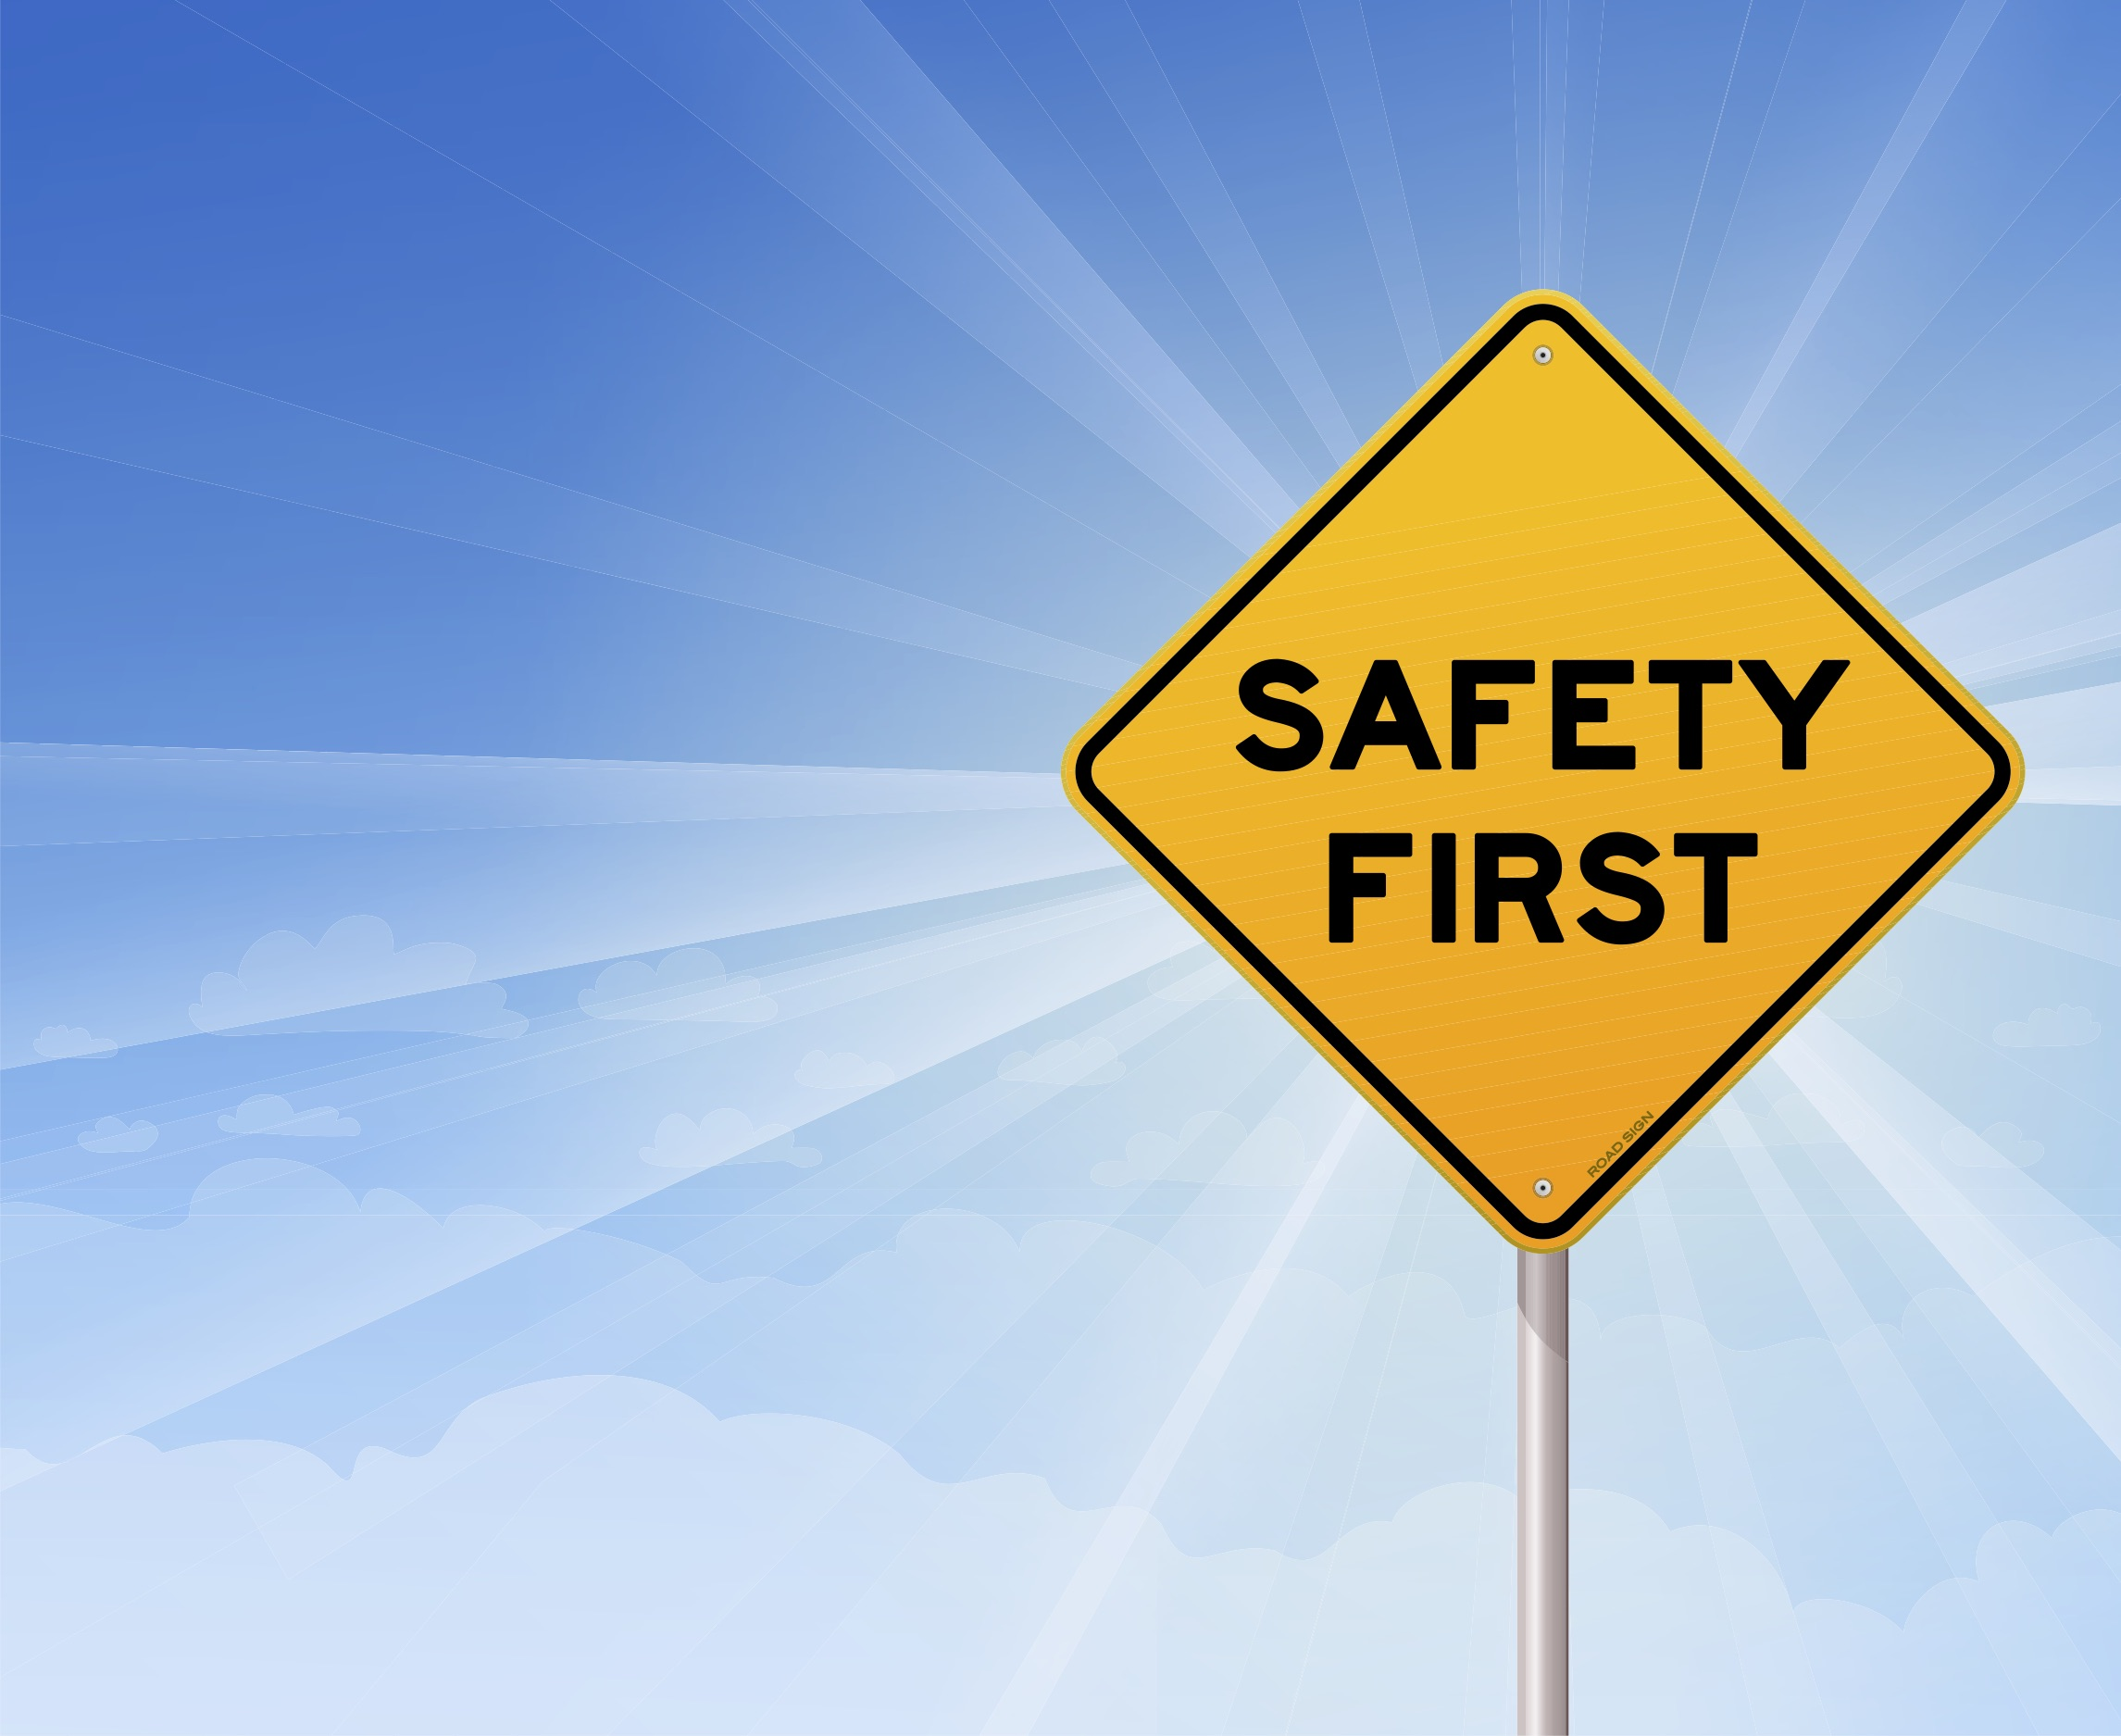 10-Questions-to-ask-When-Evaluating-the-Safety-of-Assisted-Living.jpg